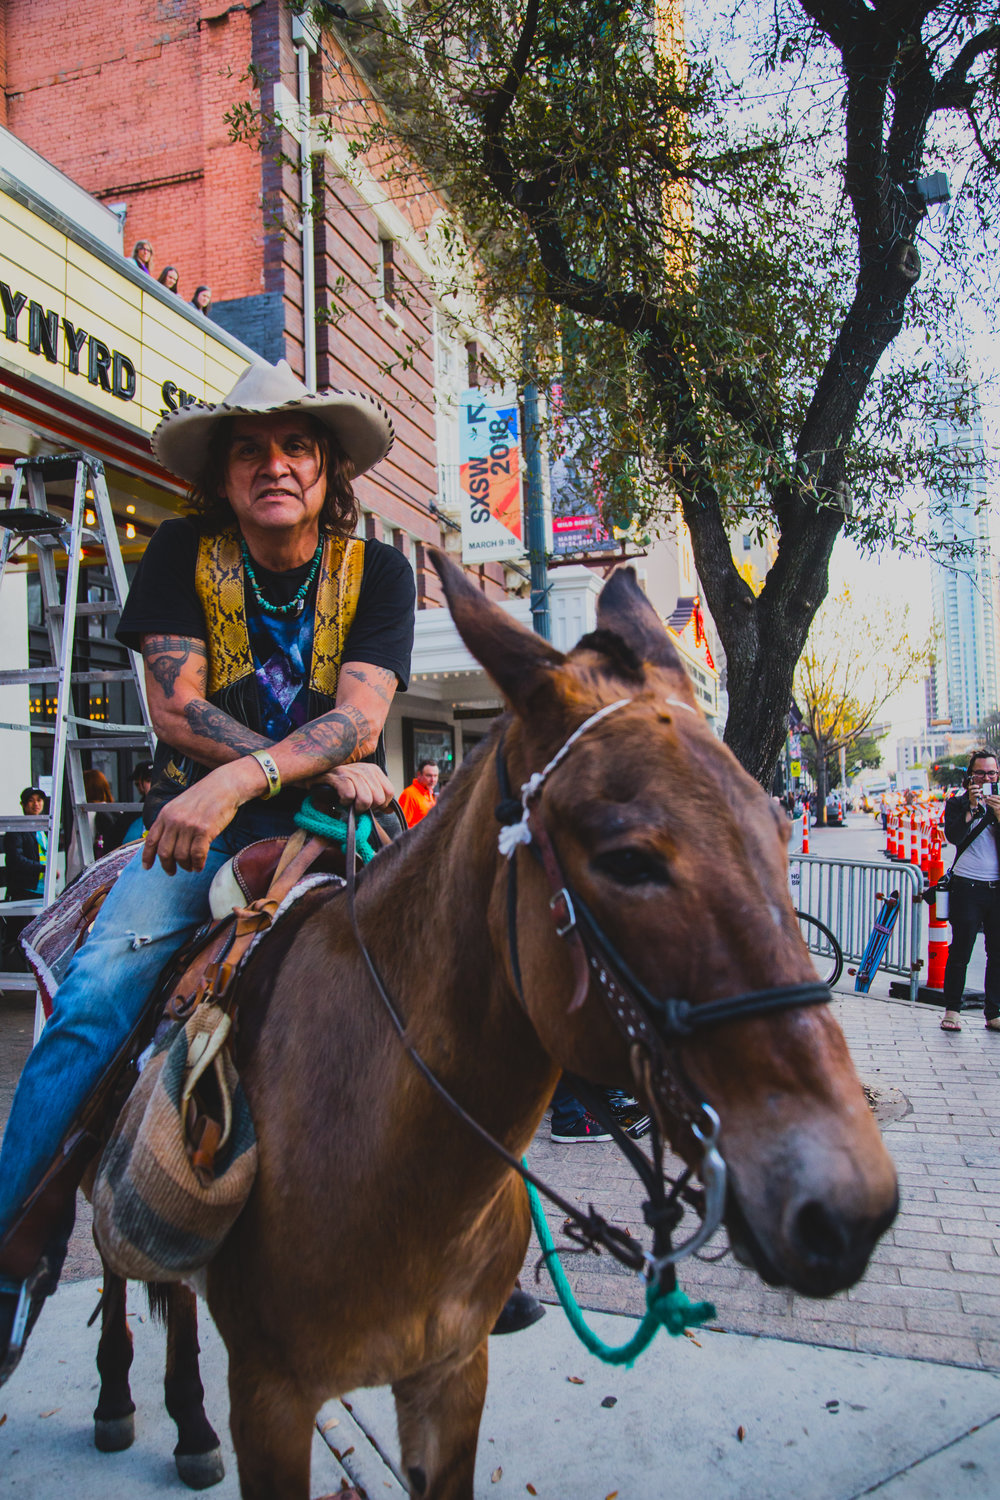 Sam Olivo, the Sixth Street Cowboy, hanging out in front of the Stateside Theater on 03.13.2018